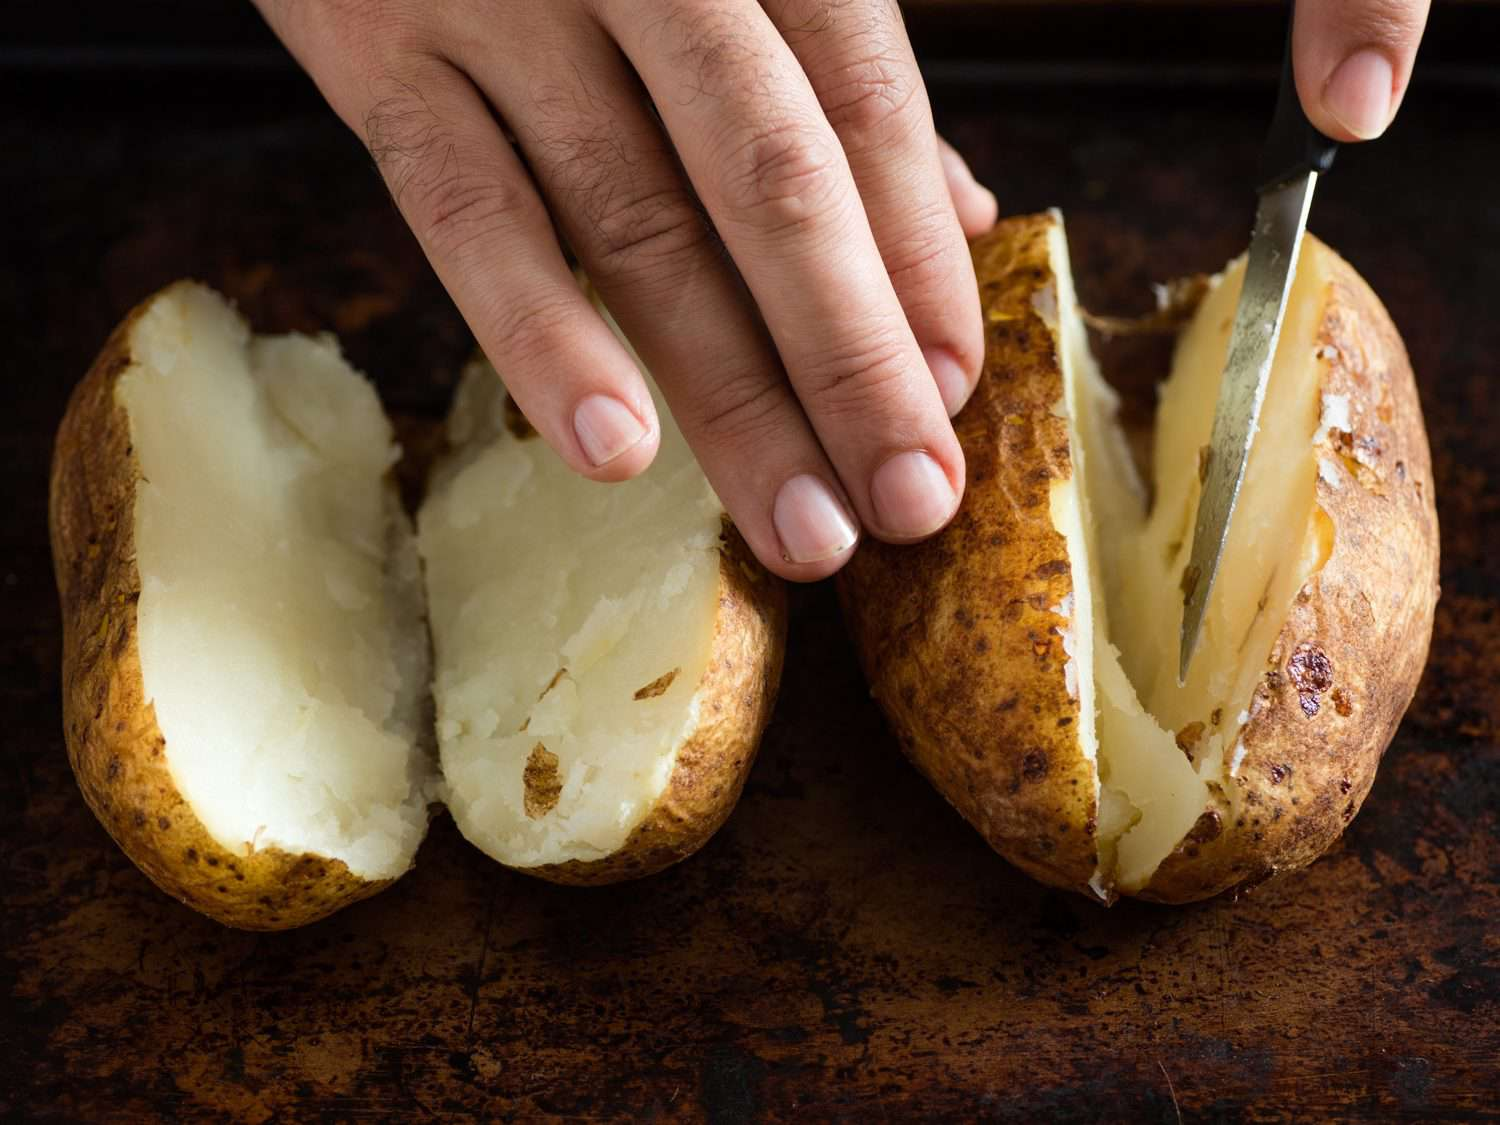 Using a pairing knife to cut two potatoes in half.